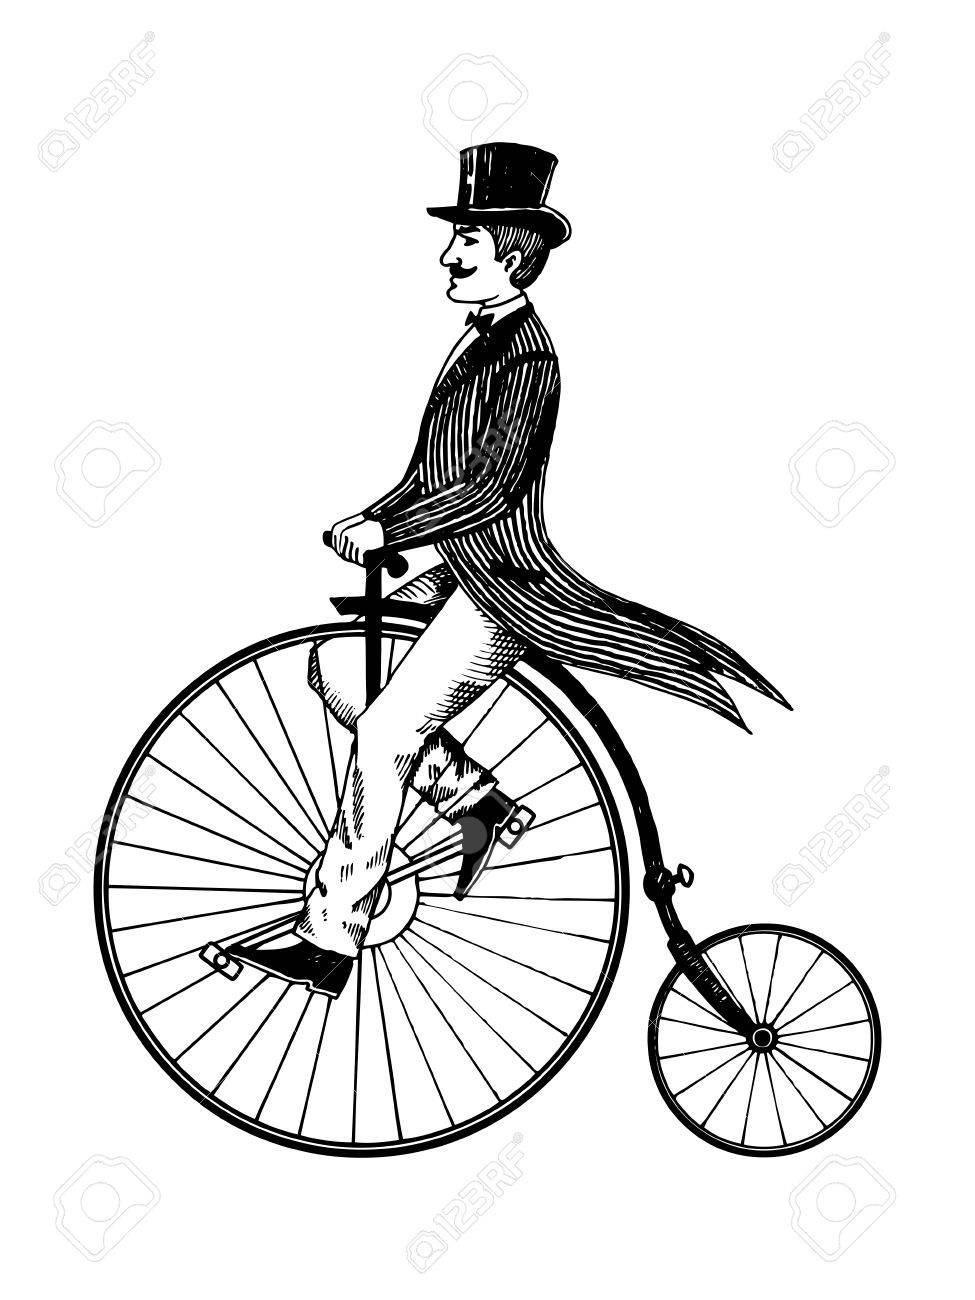 975x1300 Man On Retro Vintage Old Bicycle Engraving Vector Illustration